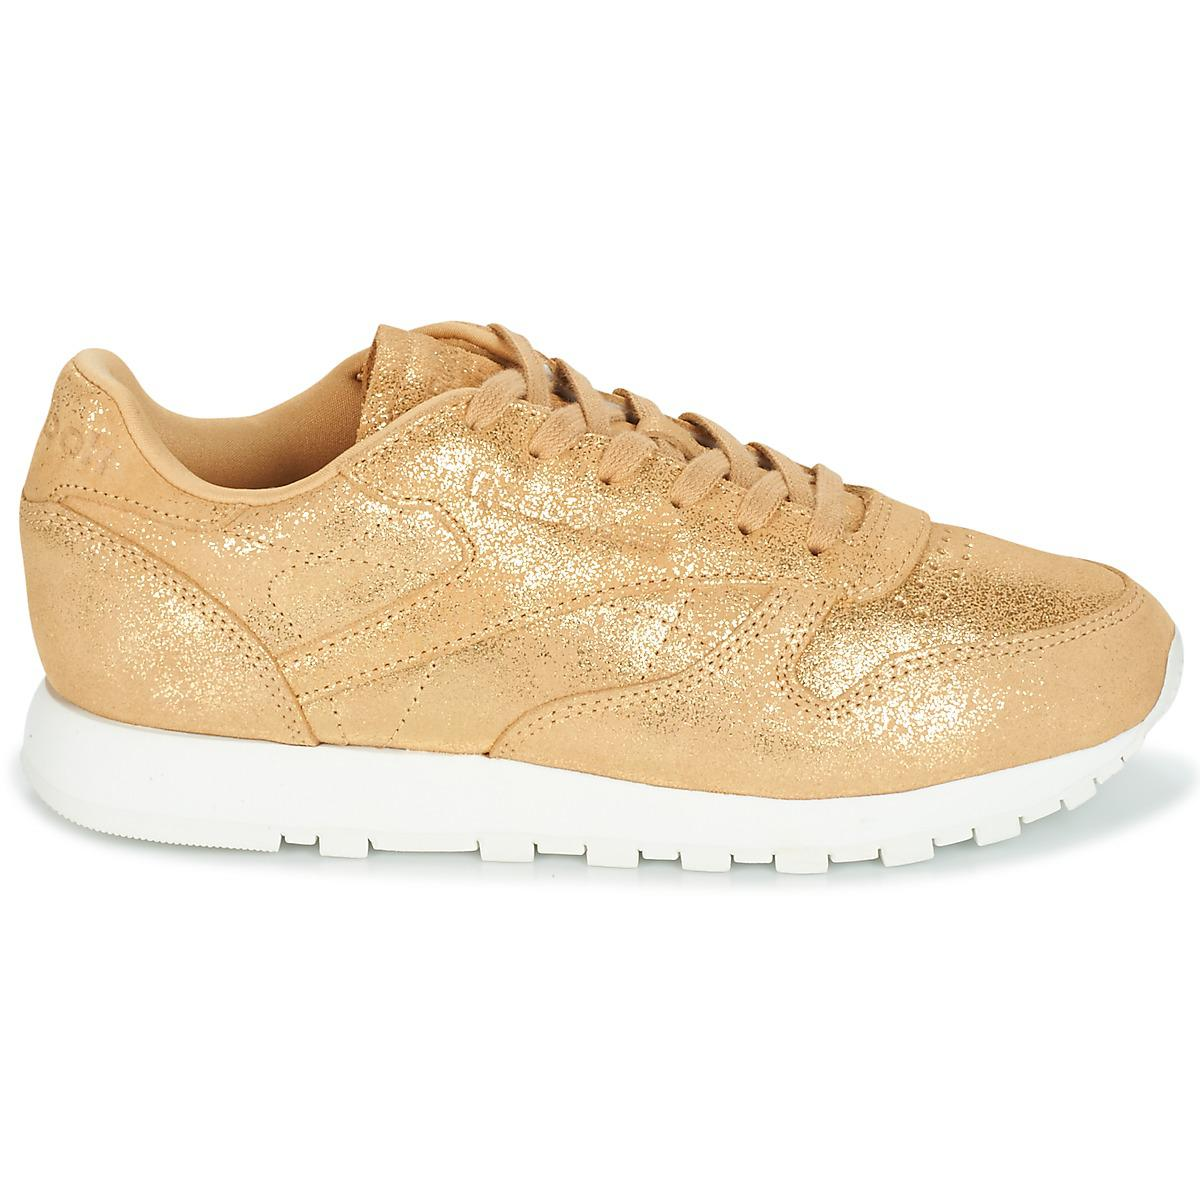 632964817c5c7 Reebok - Metallic Classic Leather Shimmer Women s Shoes (trainers) In Gold  - Lyst. View fullscreen